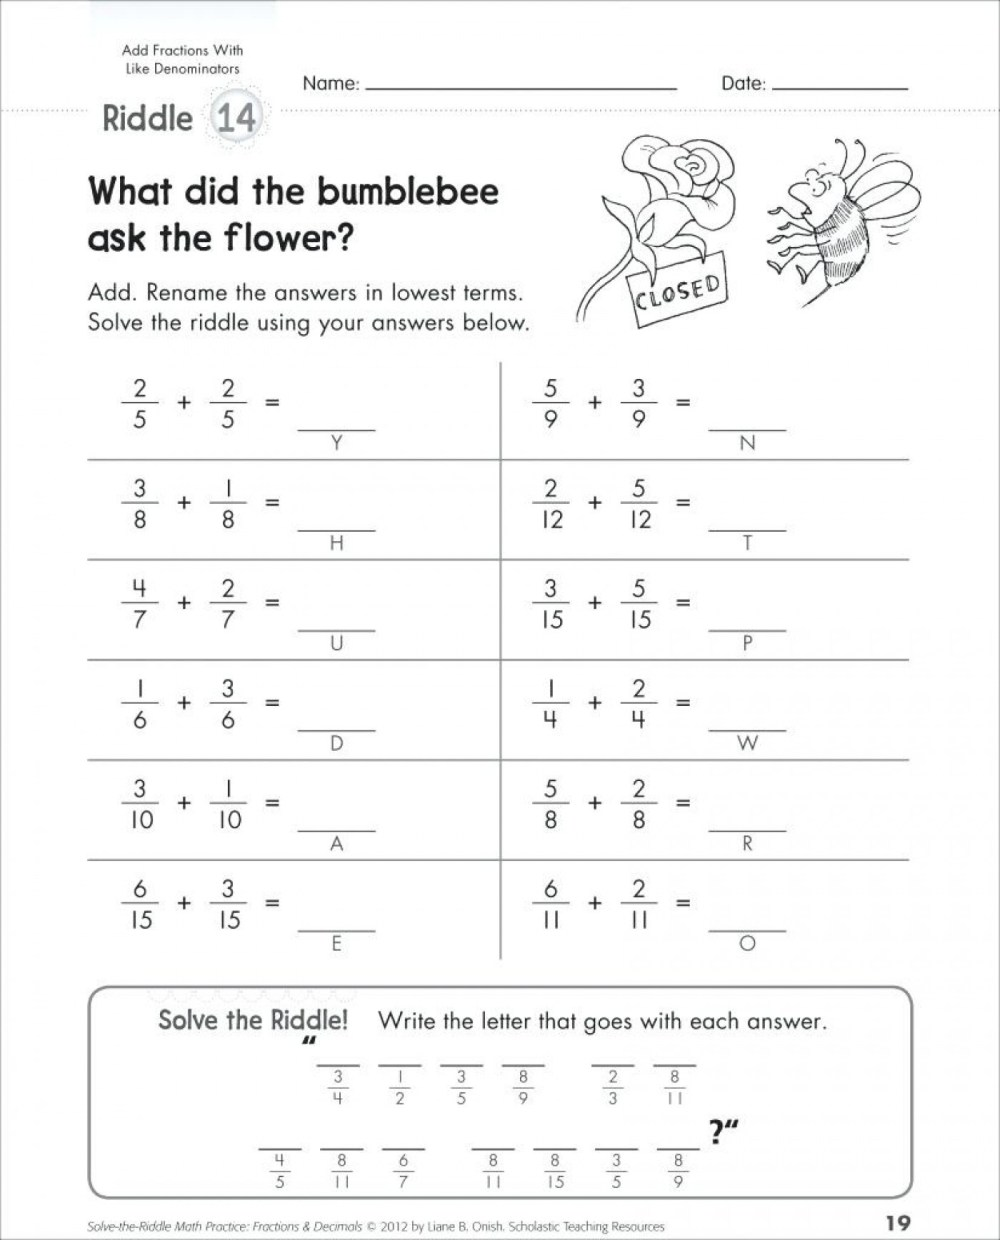 medium resolution of 5 Free Math Worksheets Second Grade 2 Addition Add 2 Digit Plus 1 Digit  Missing Addend No Regrouping - apocalomegaproductions.com